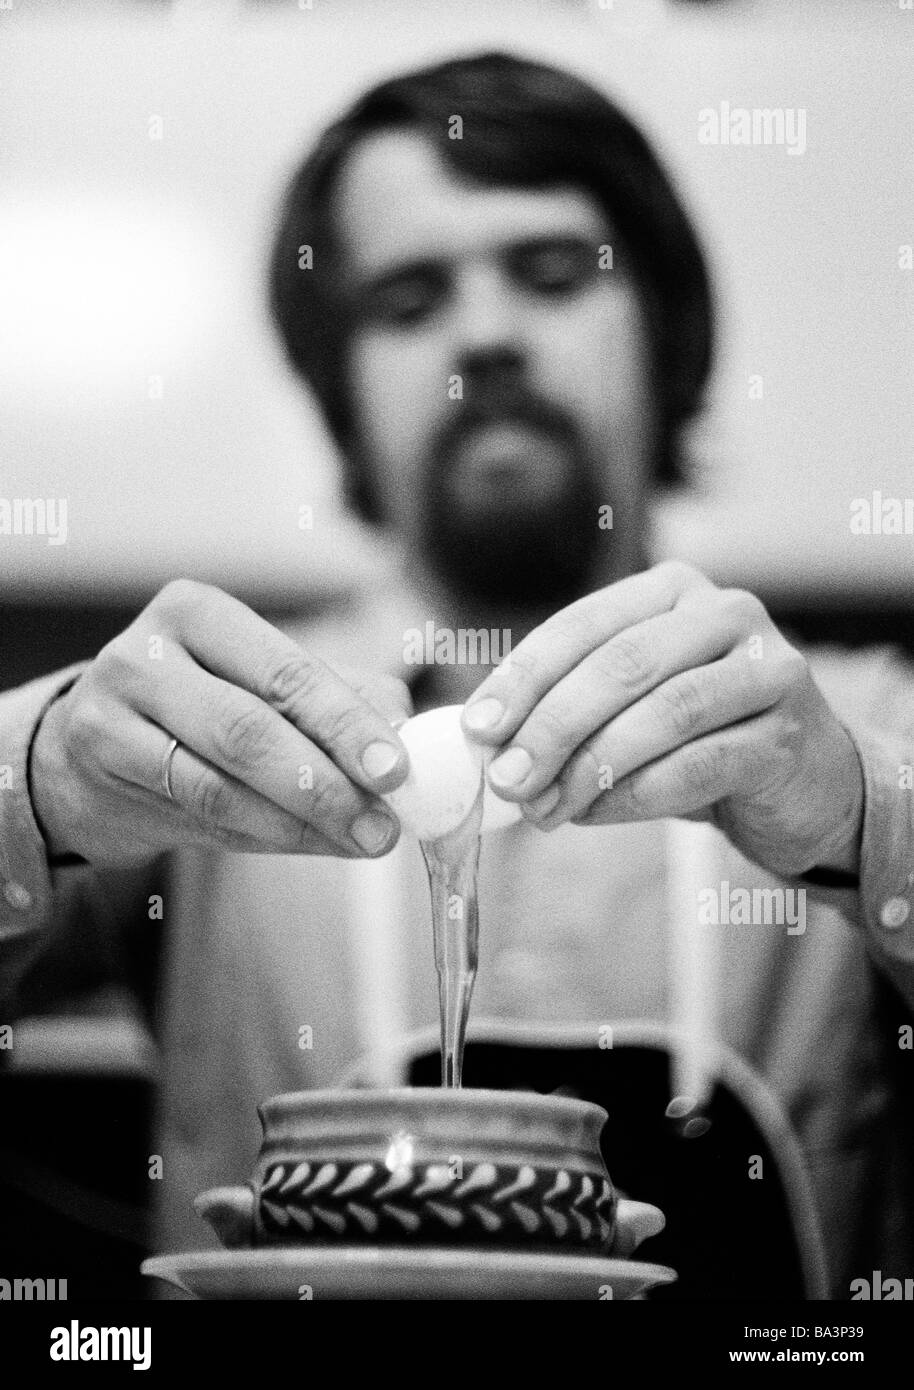 Seventies, black and white photo, people, amateur cook, young man breaks an egg into a bowl, aged 30 to 35 years, - Stock Image